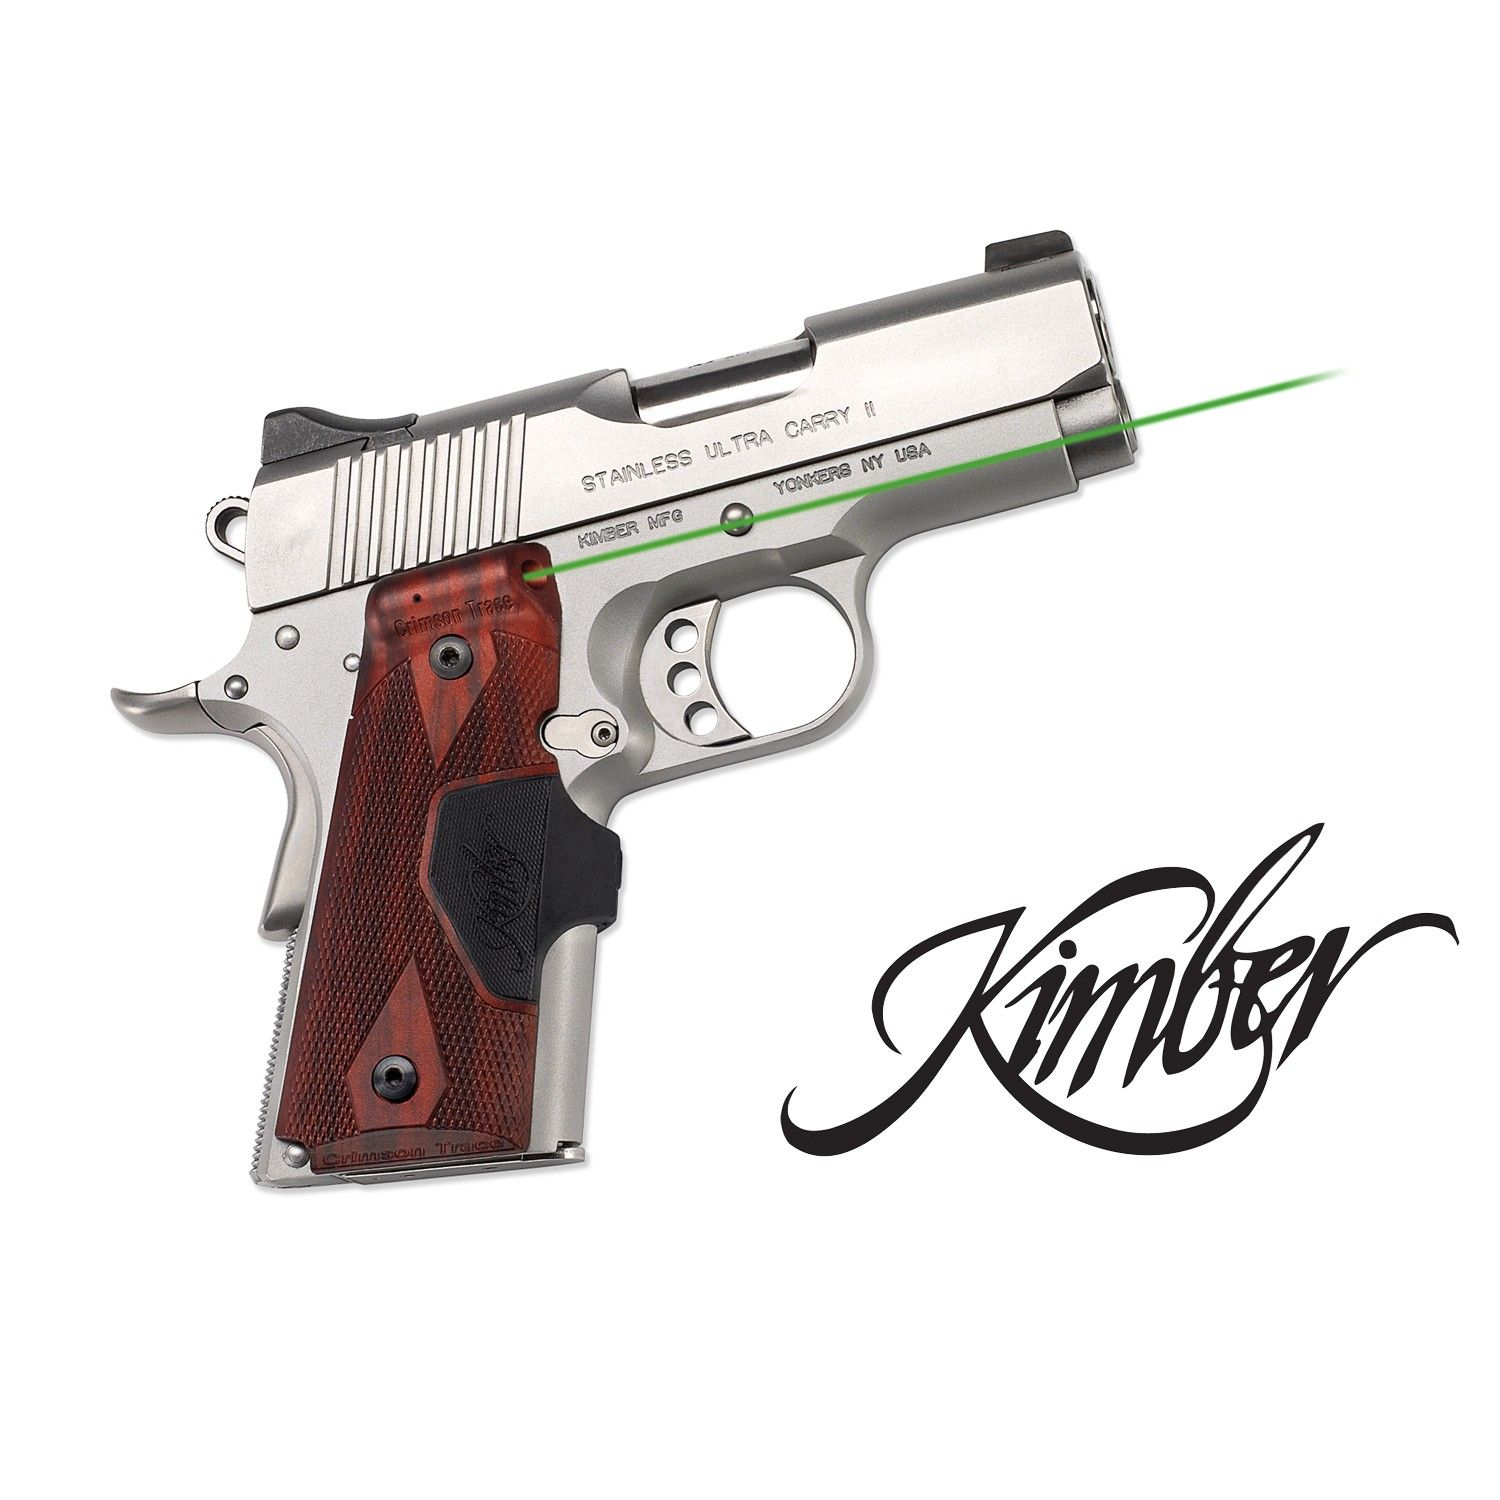 Green Laser Sight for Kimber Compact 1911 | Official Crimson